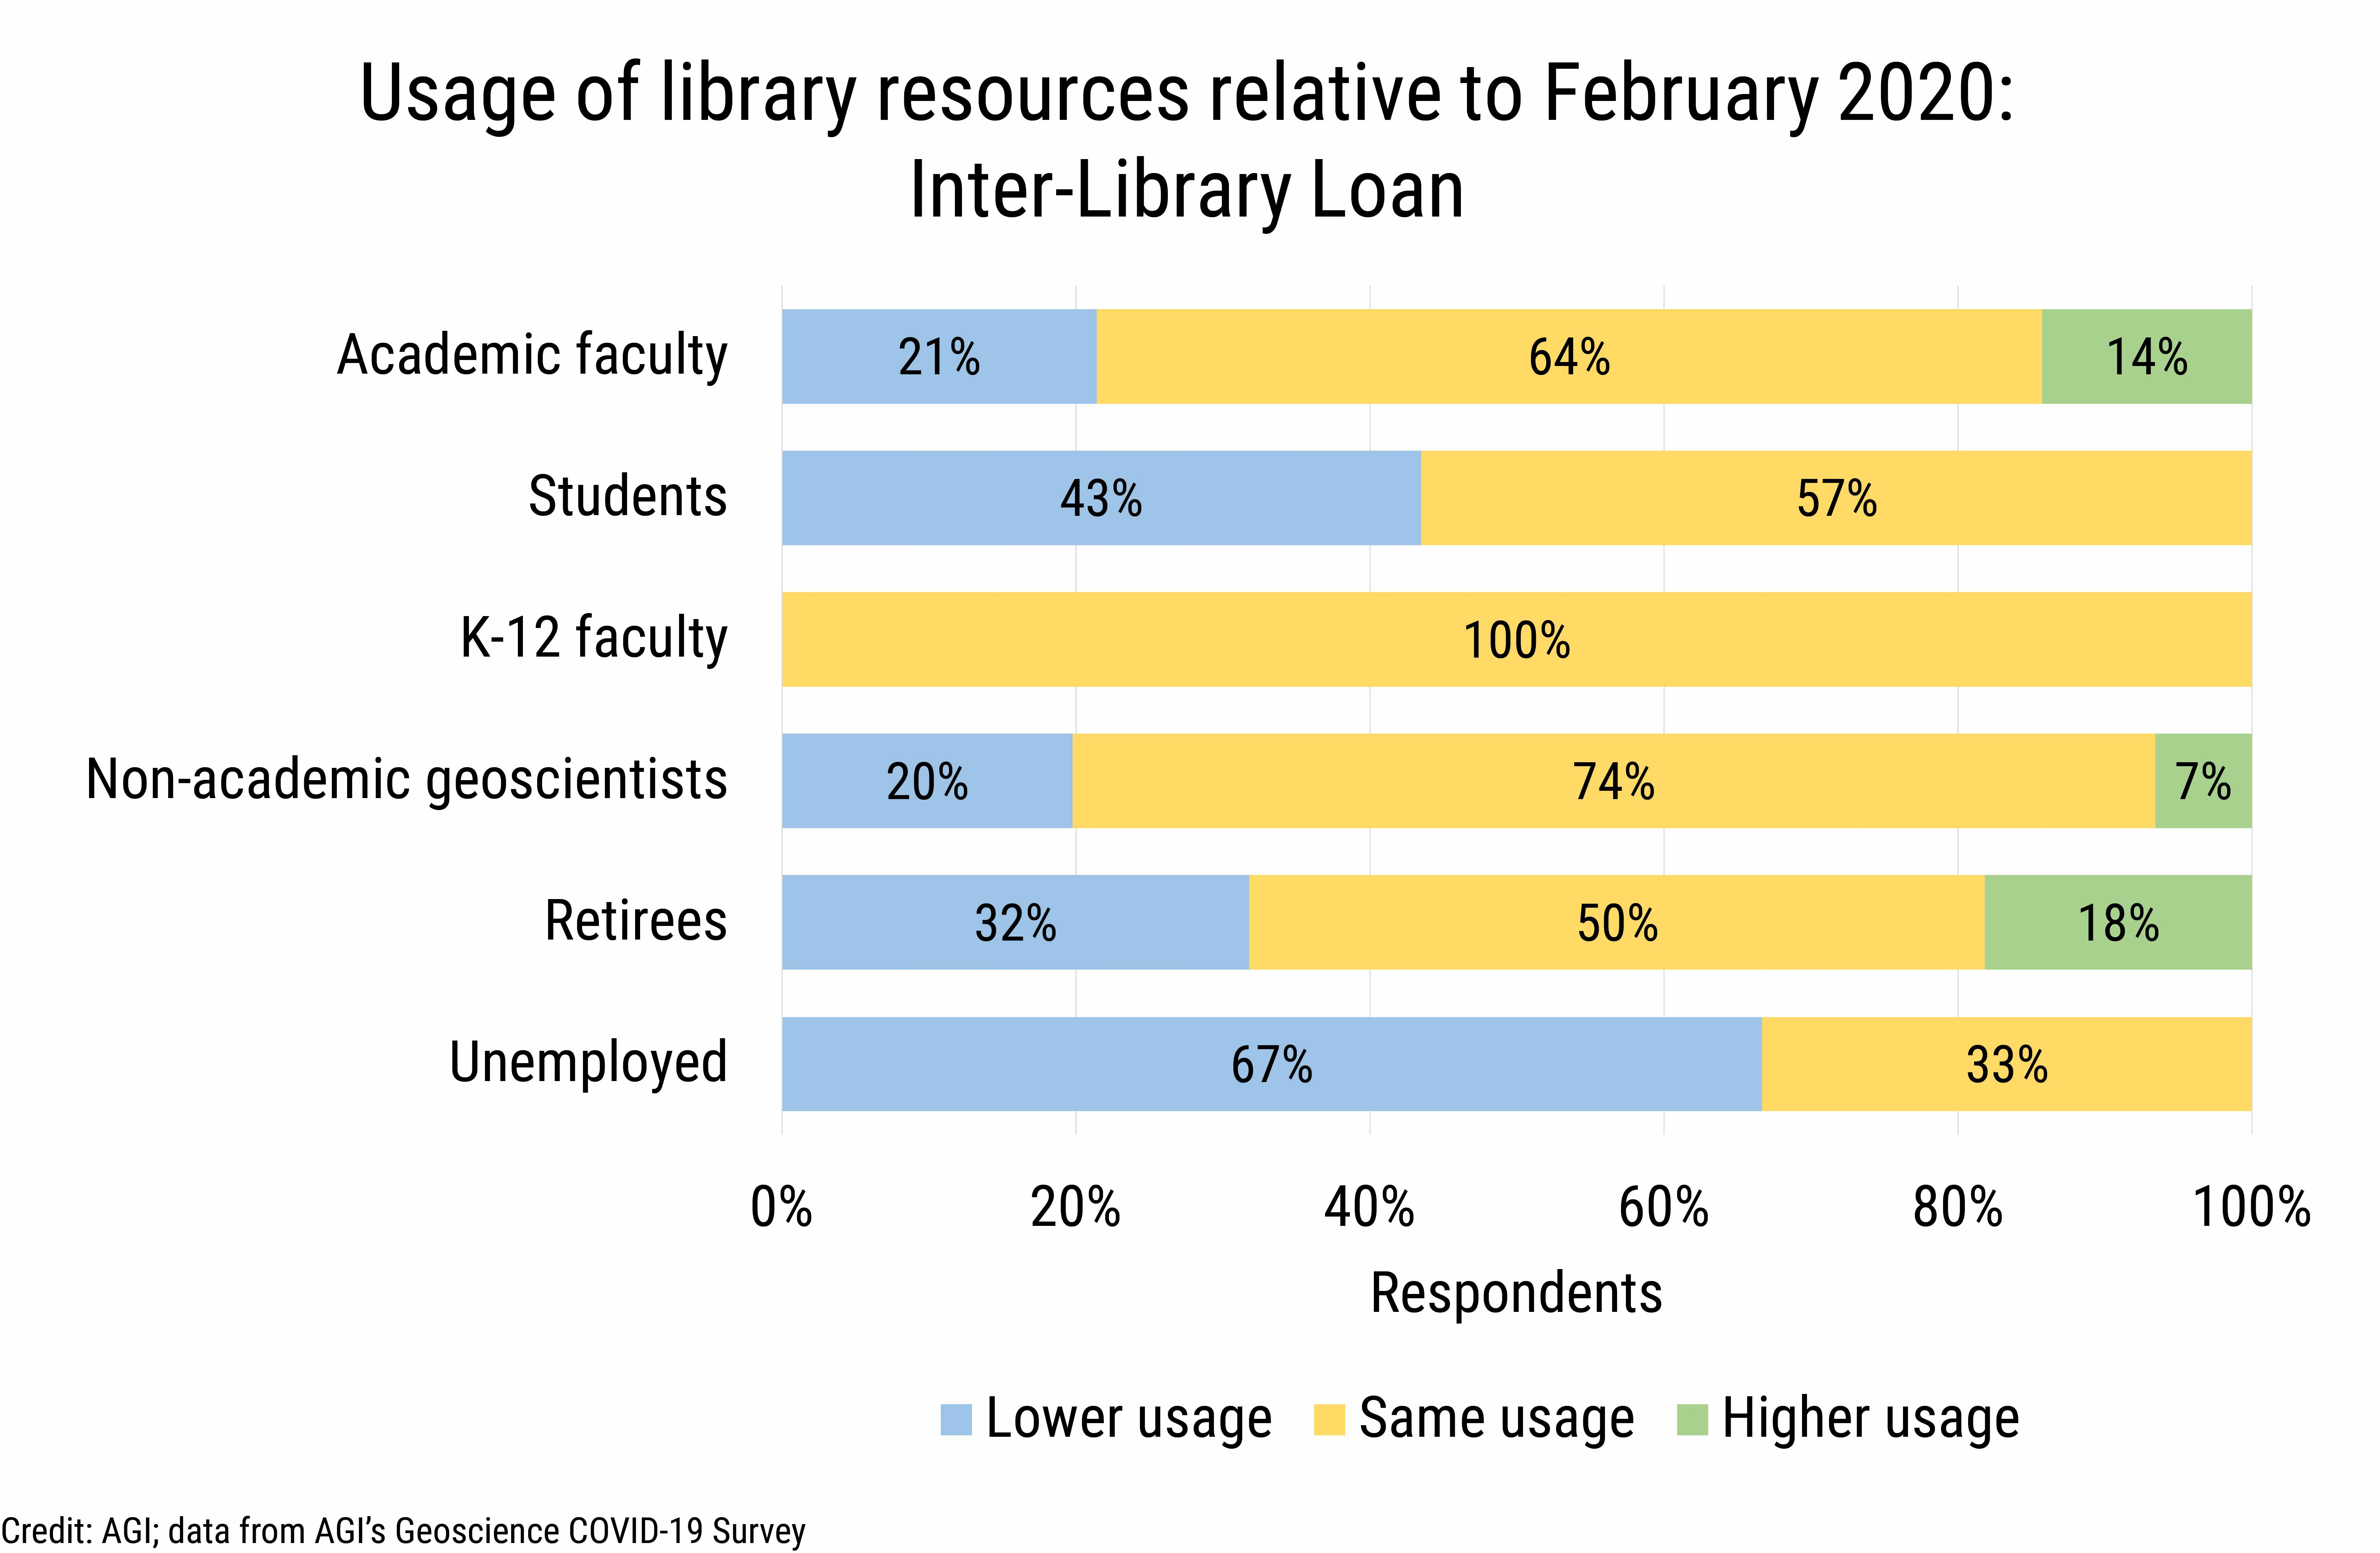 DB_2020-026 chart 05: Library resource usage by cohort: inter-library loan (Credit: AGI; data from AGI's Geoscience COVID-19 Survey)